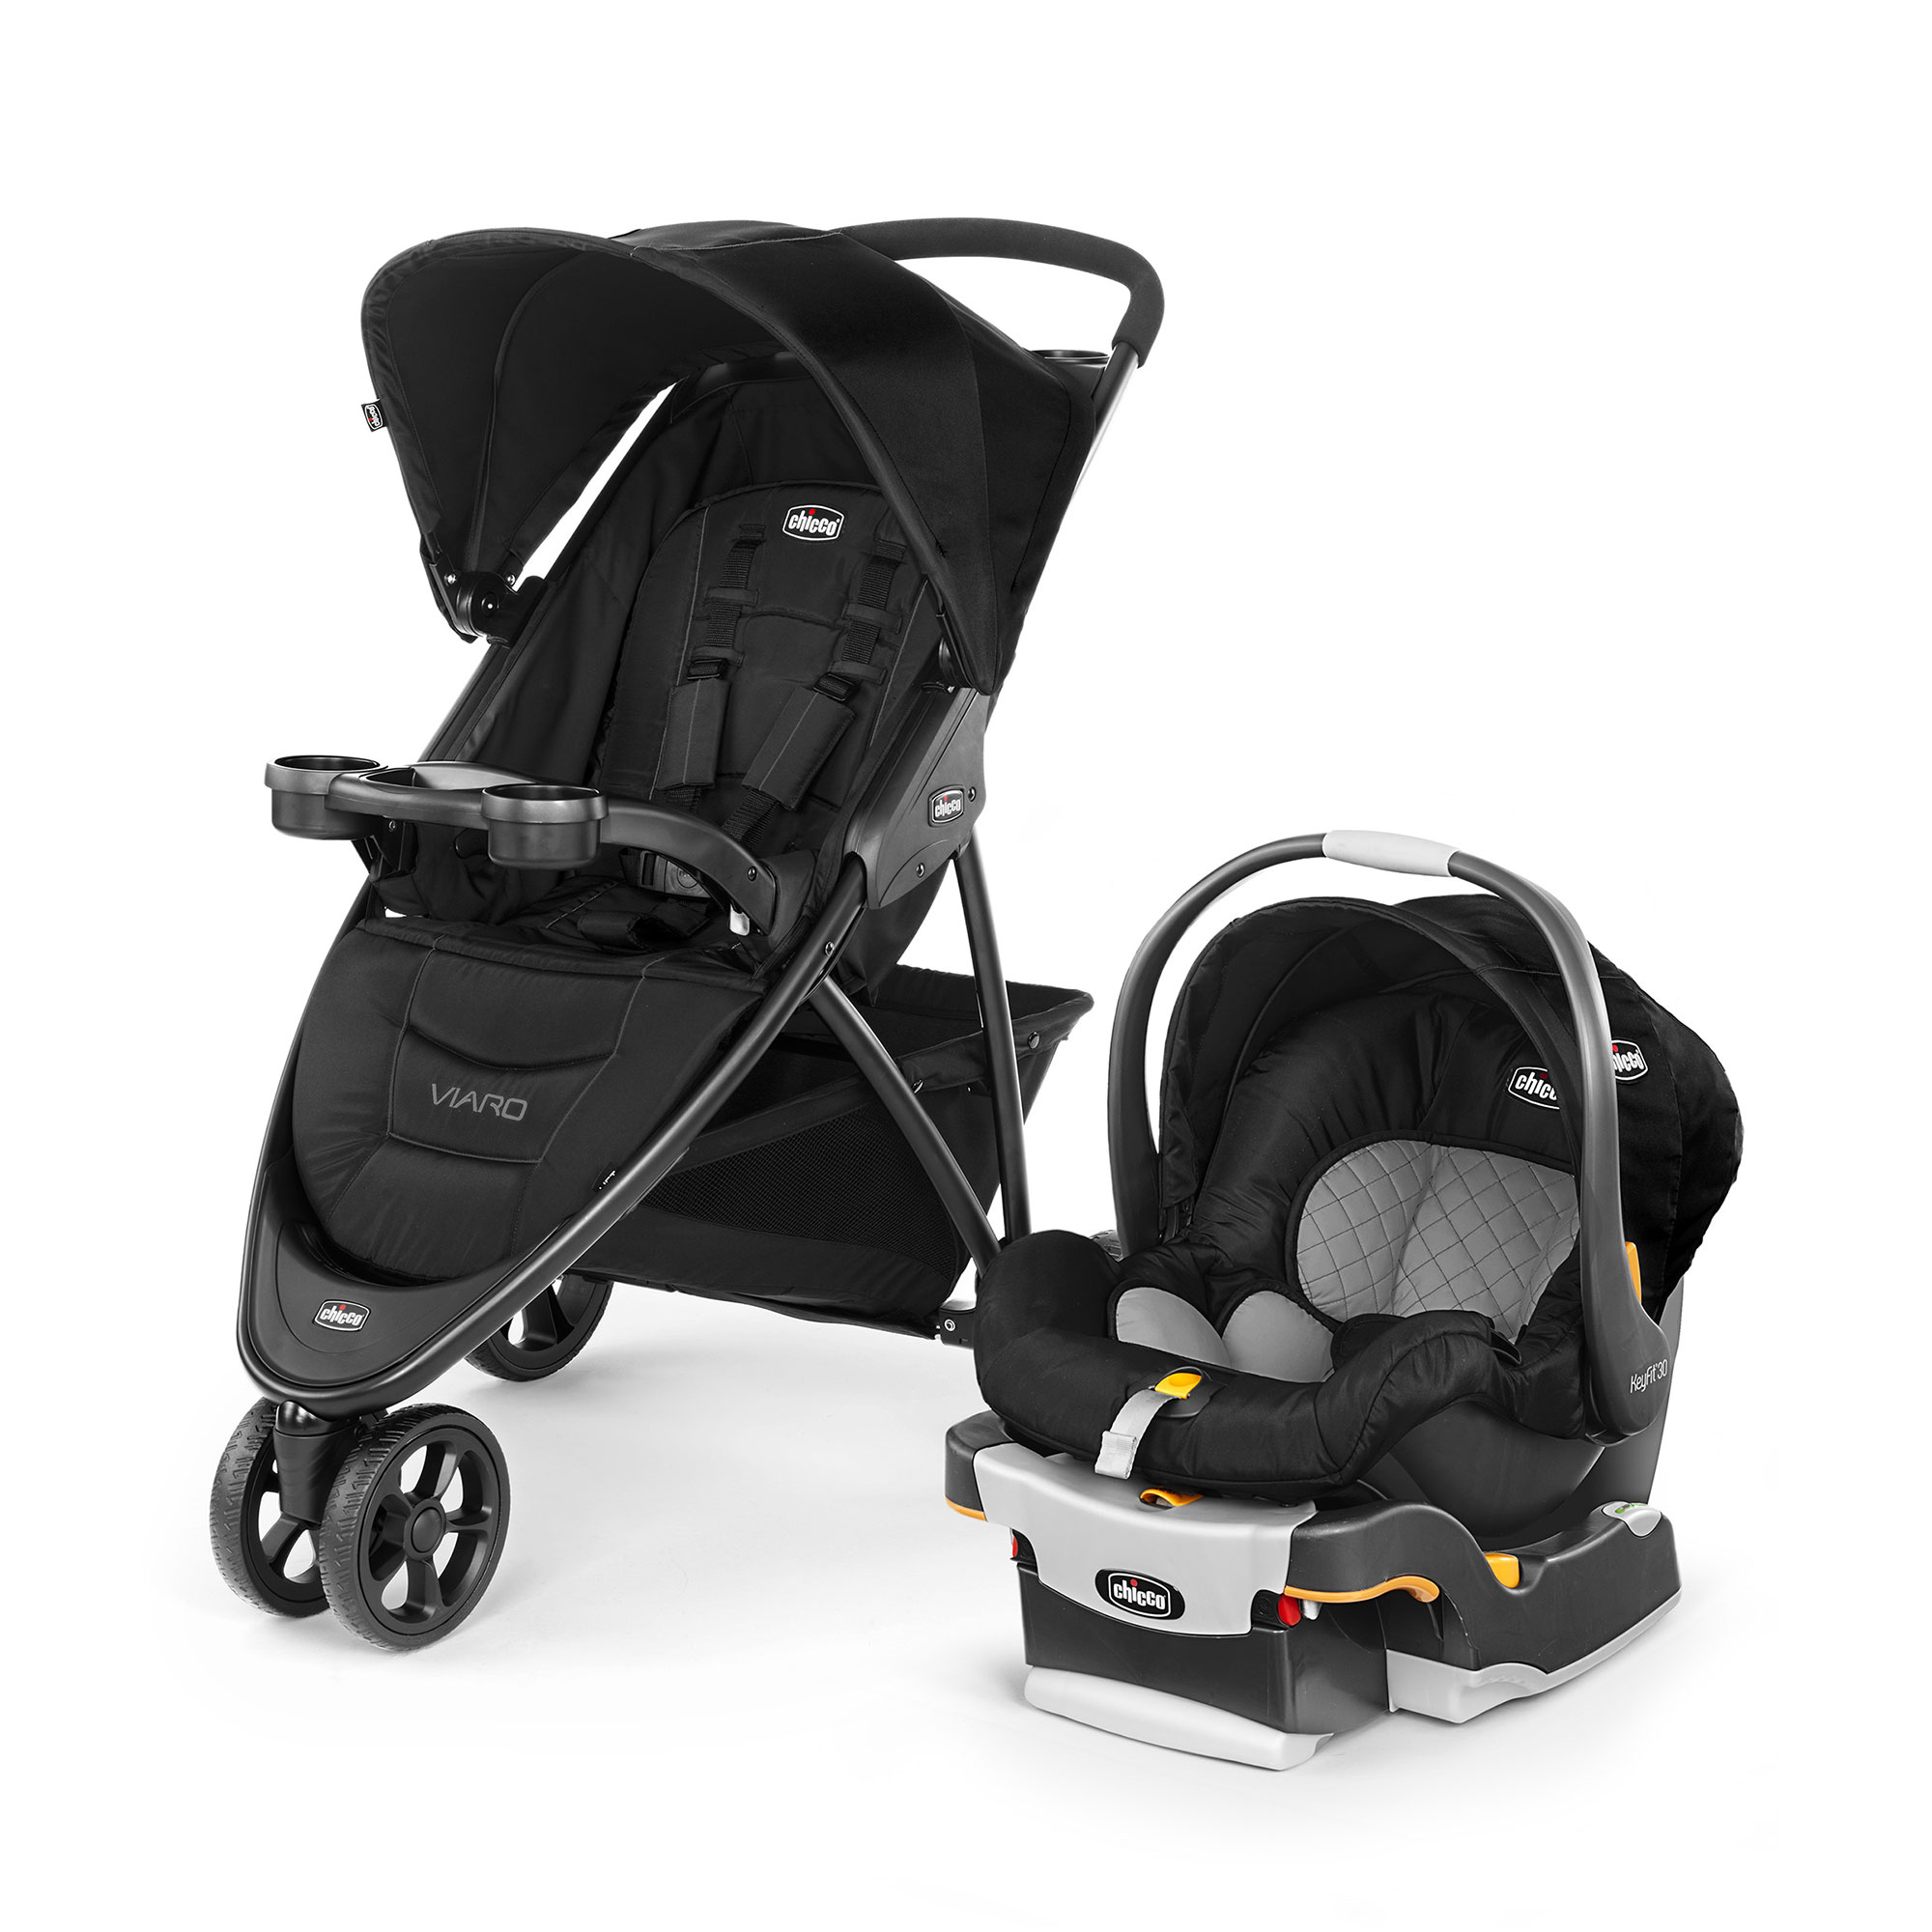 Chicco Viaro Travel System - Black